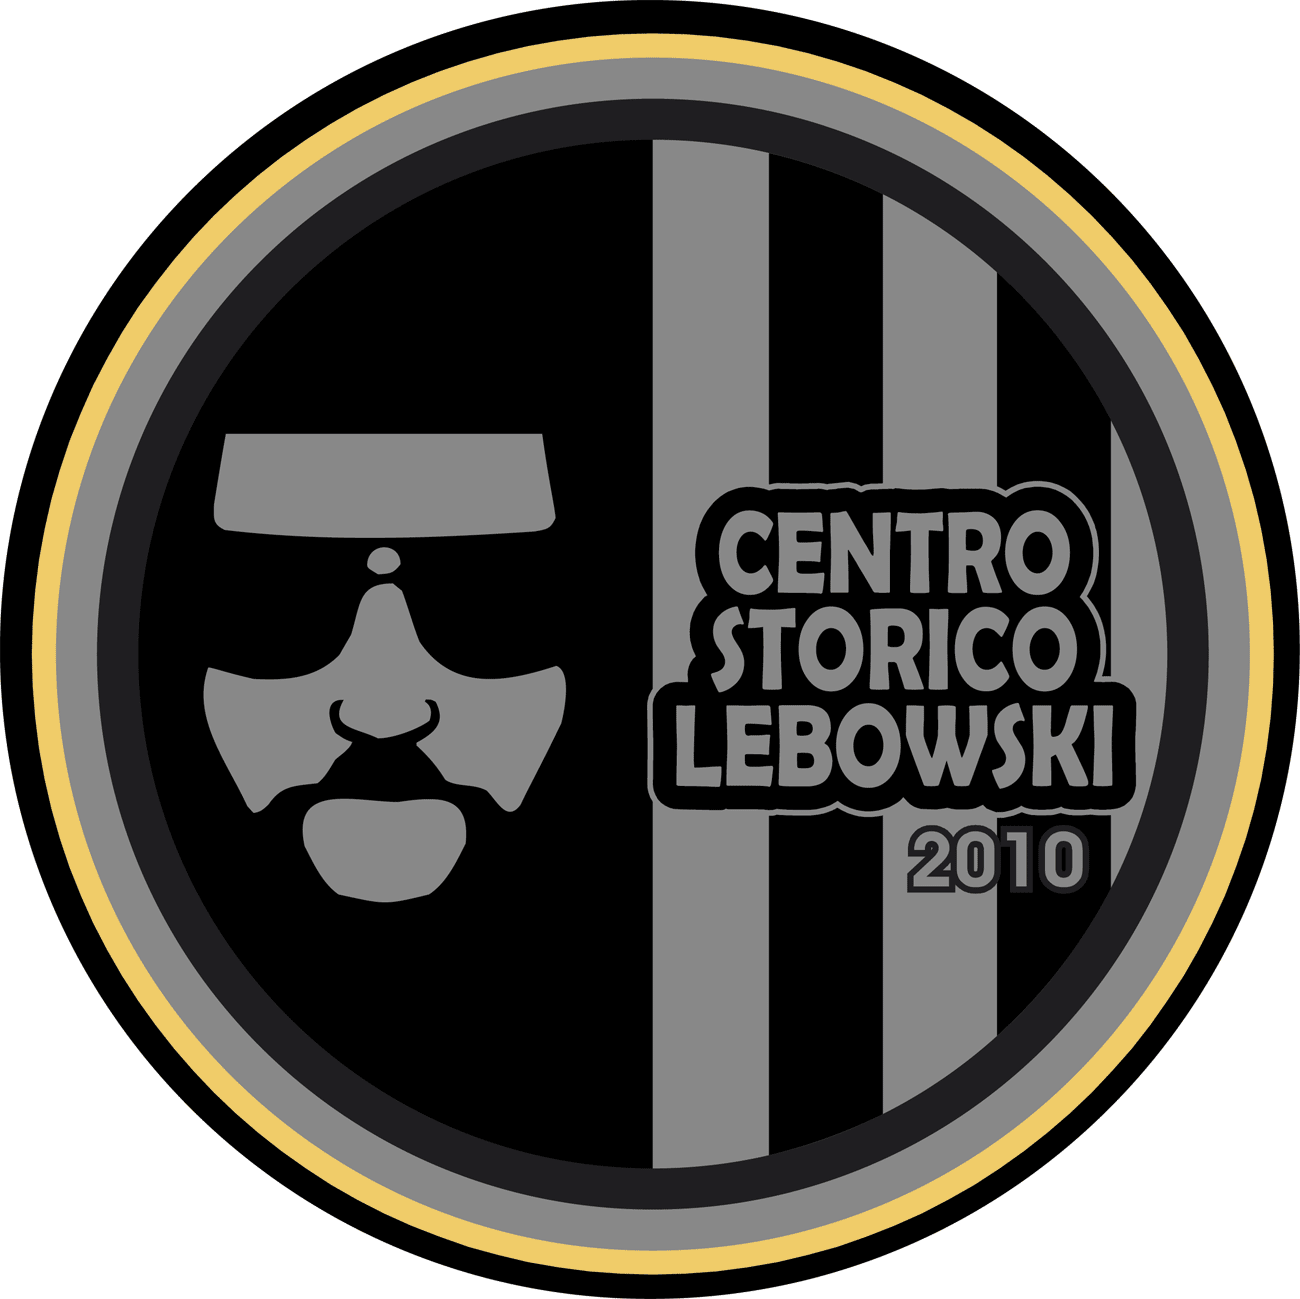 http://www.cslebowski.it/wp-content/uploads/2015/09/logo-ufficiale.png